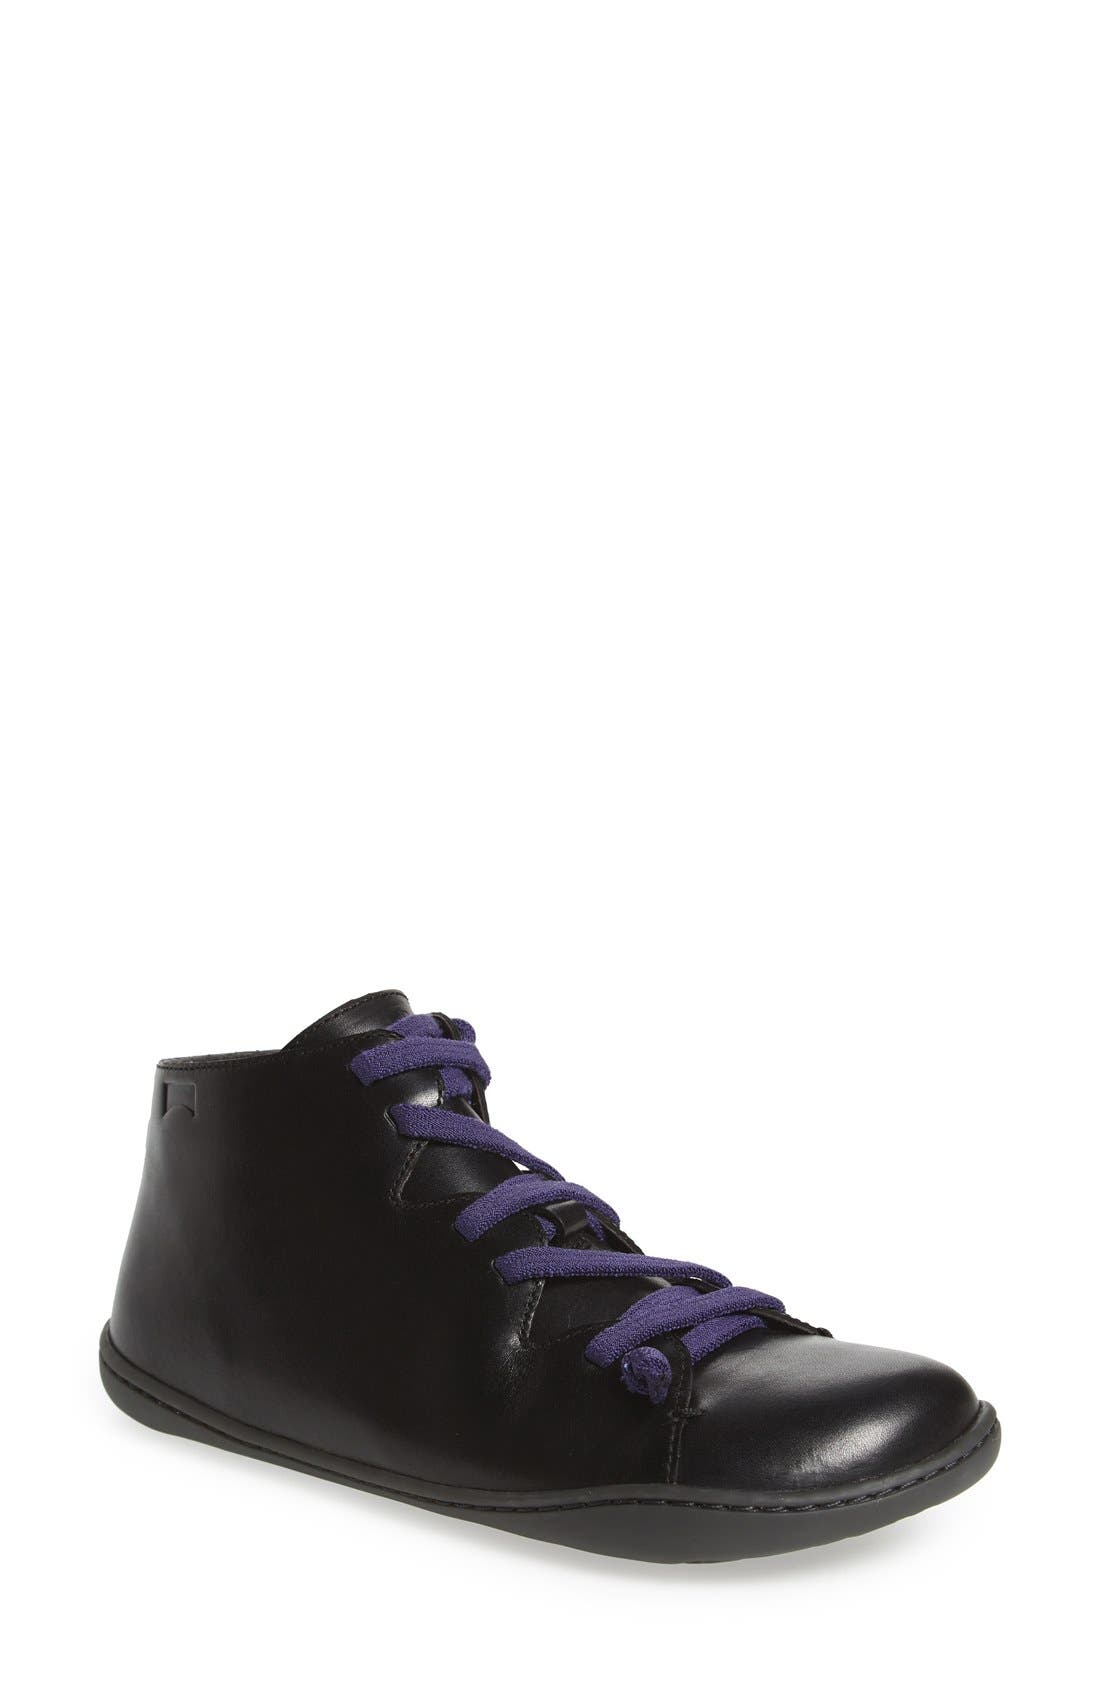 'Peu Cami' Mid Sneaker, Main, color, BLACK LEATHER